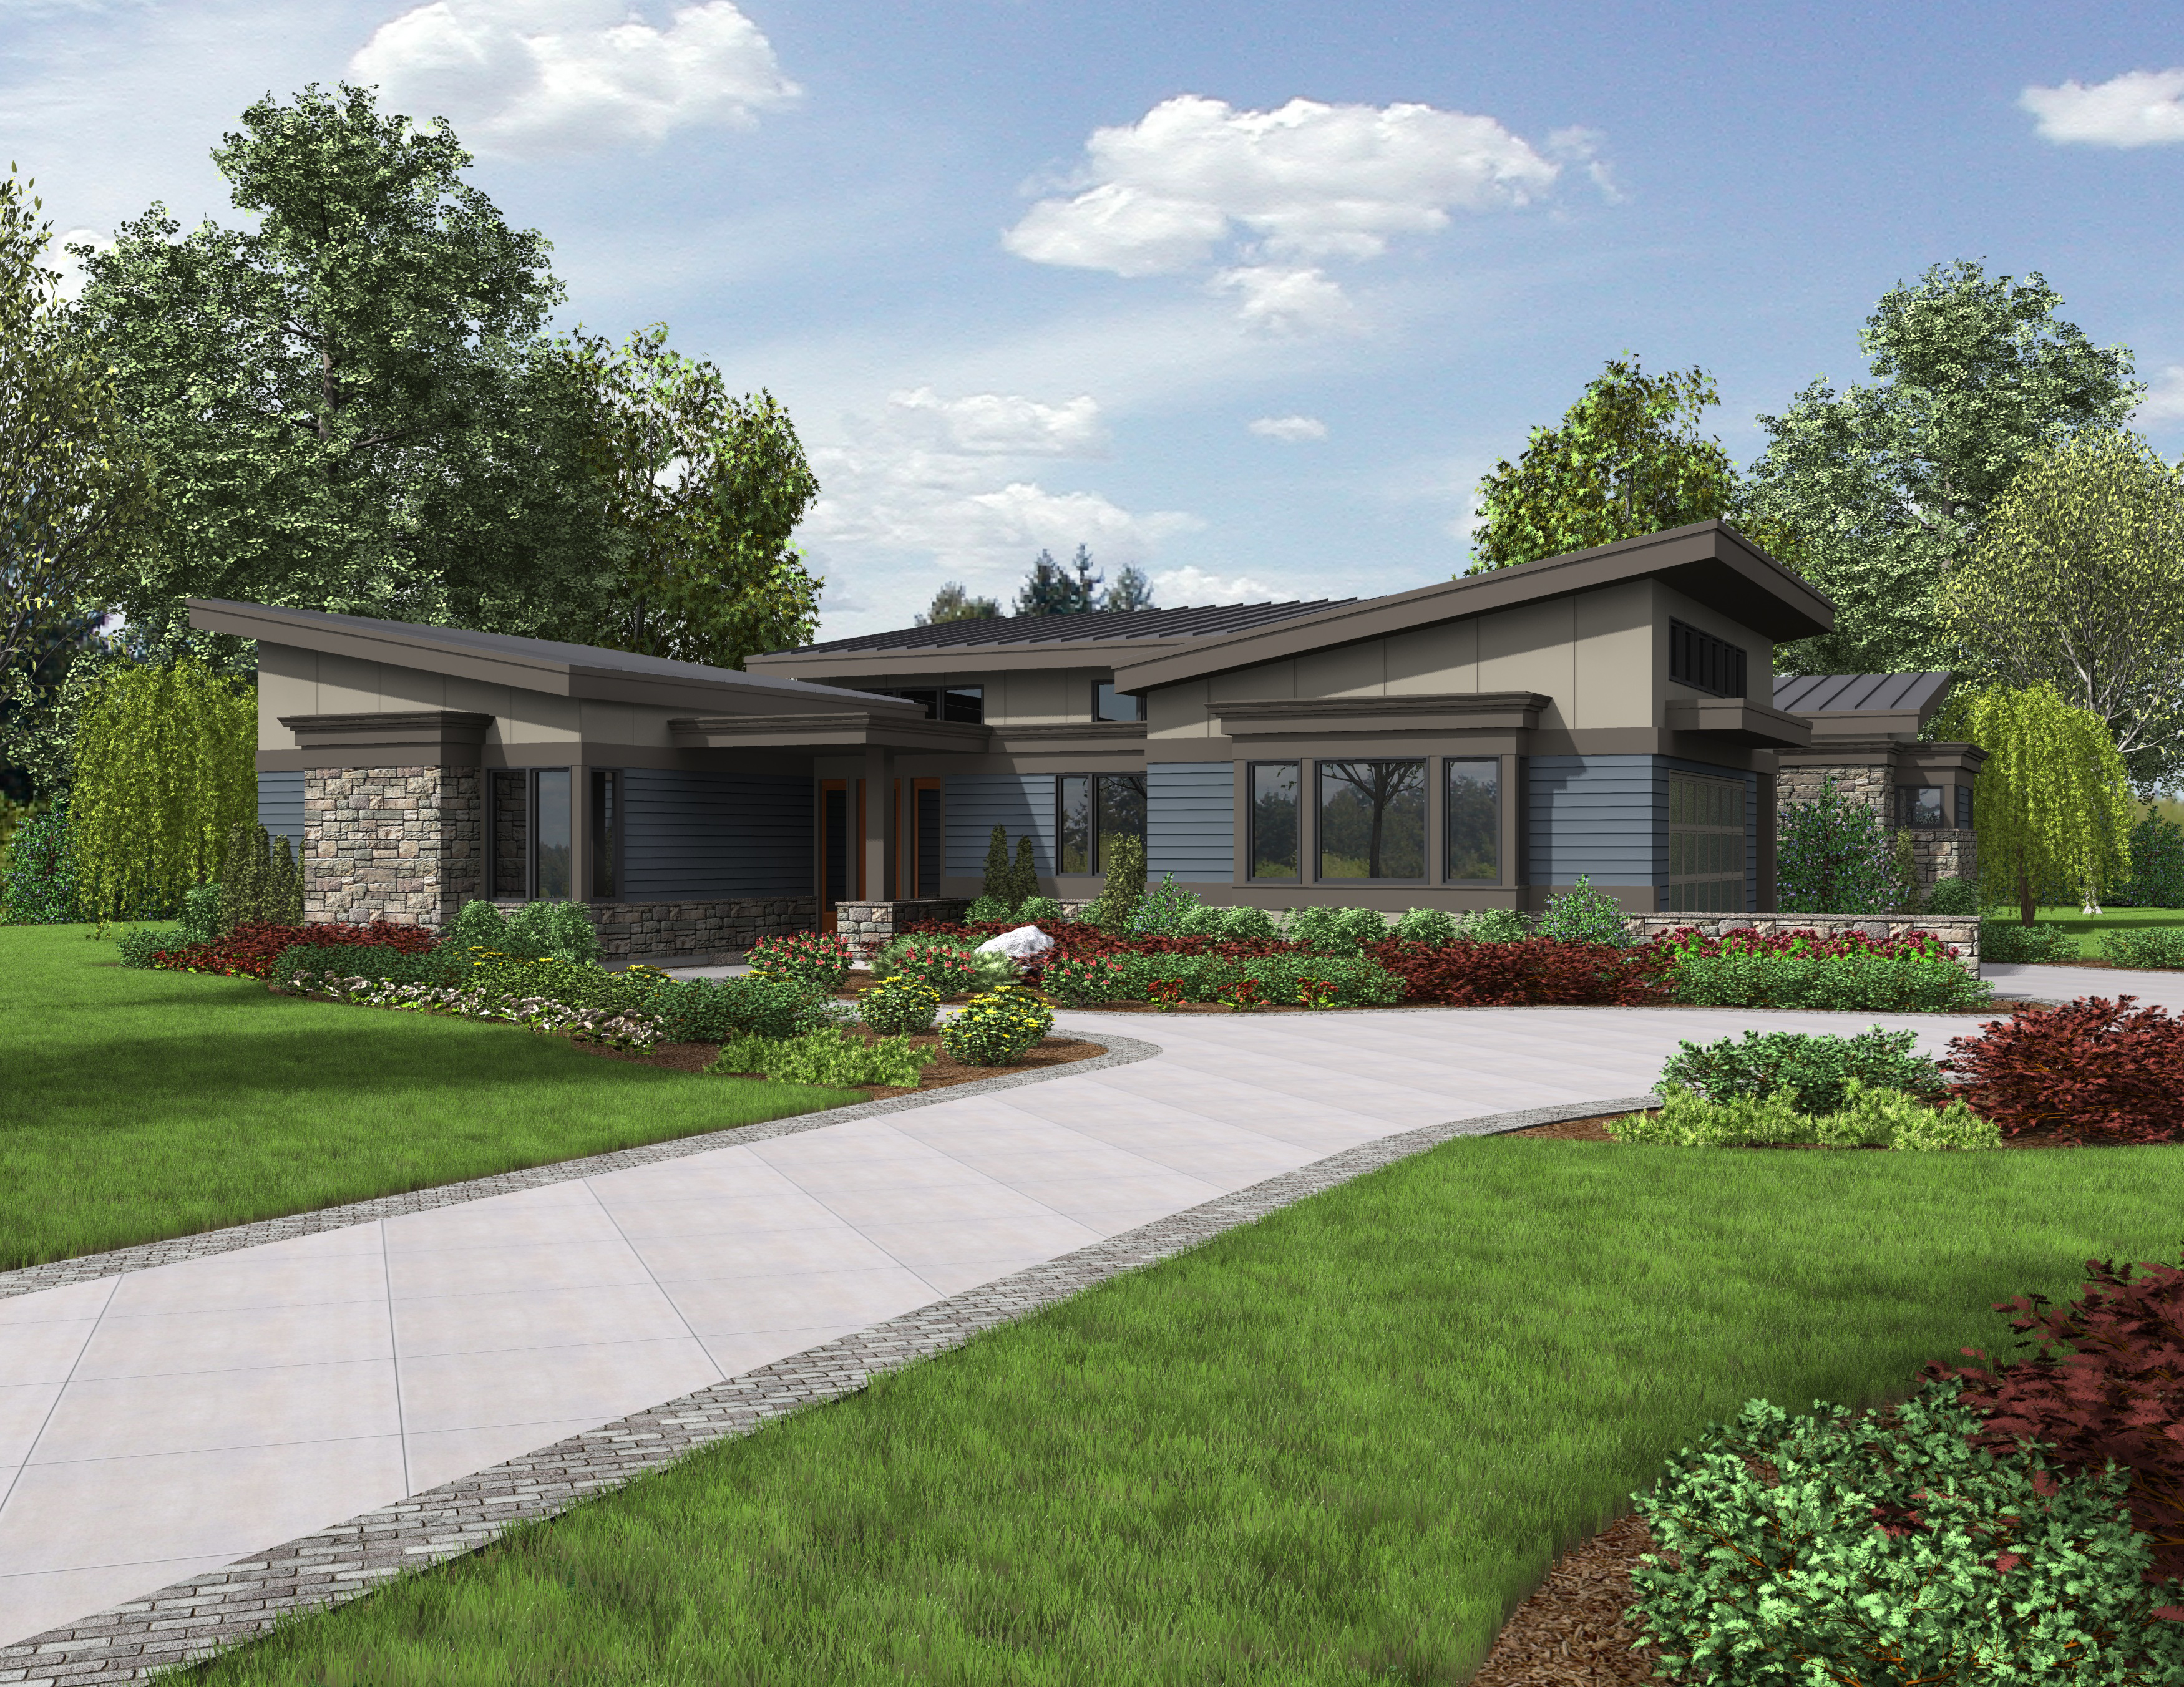 1242a-front-rendering